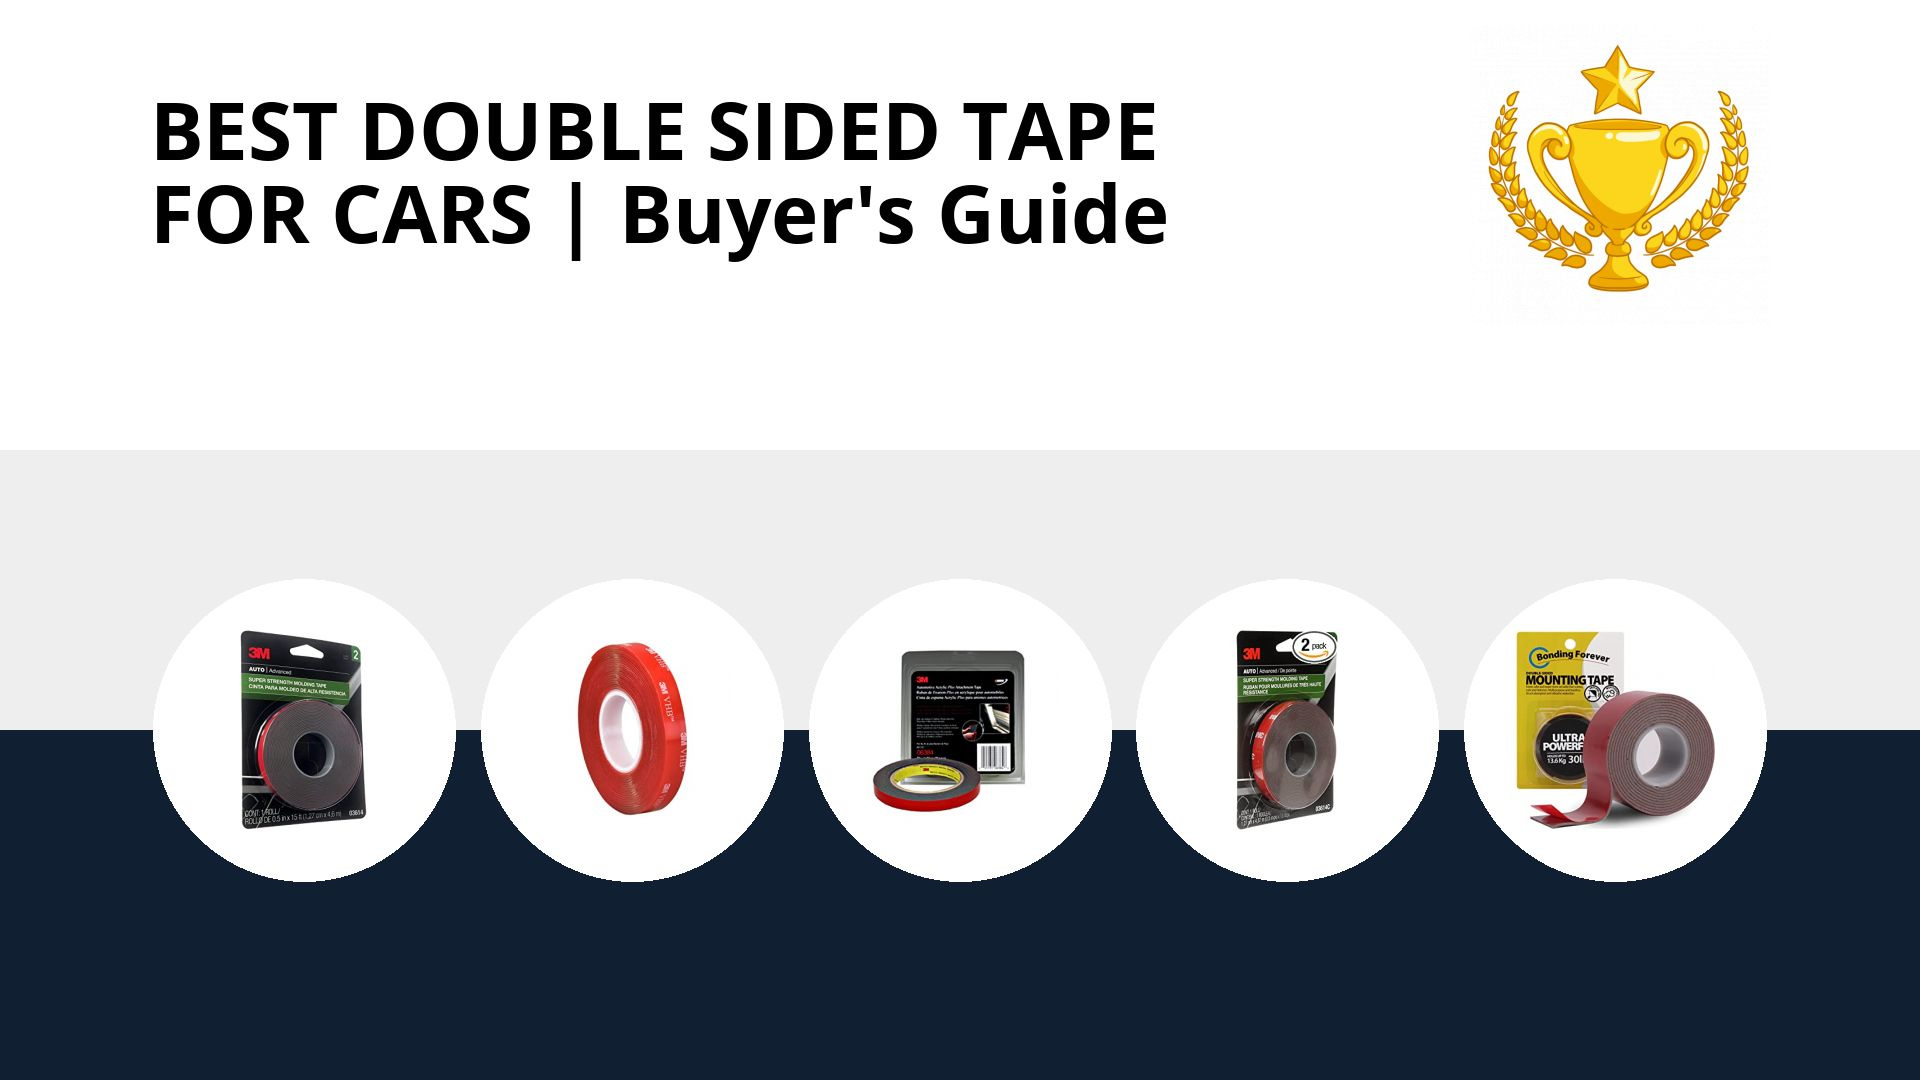 Best Double Sided Tape For Cars: image